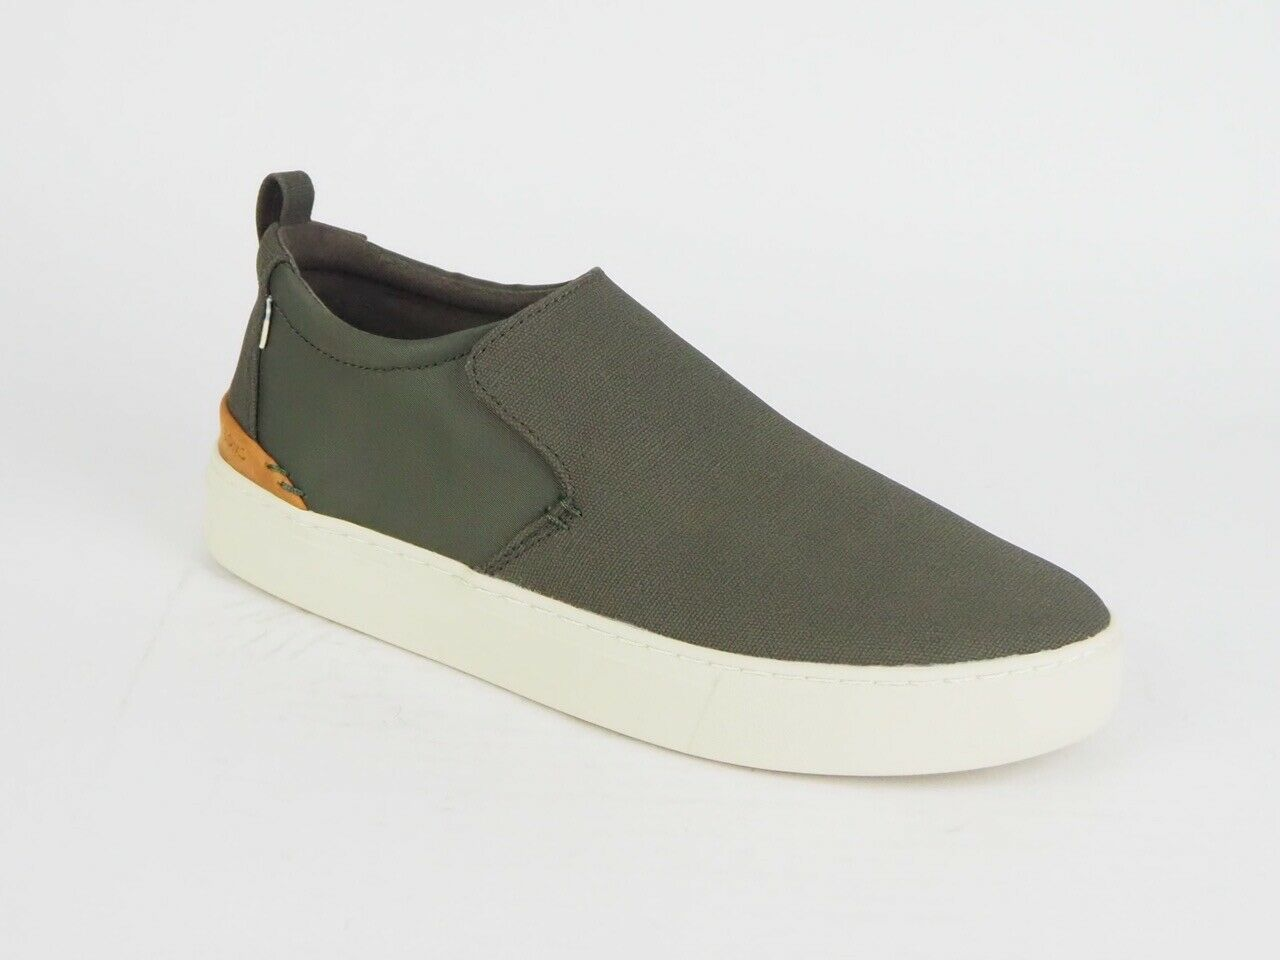 Mens Toms Paxton Tarmac Olive Canvas Flats Slip On Out Door Trainers Uk 7.5